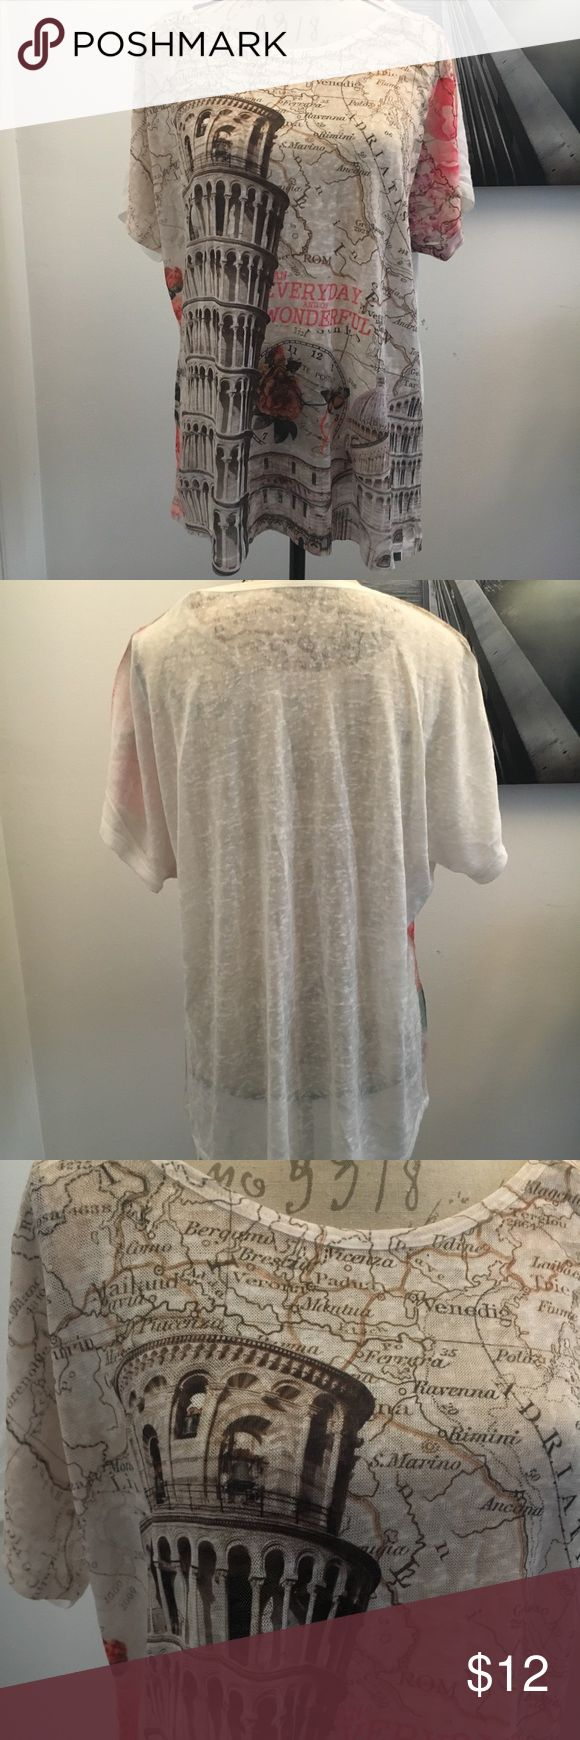 Purchased in Rome never worn 🇮🇹 Top with soft detail presenting part of the map of Italy with the Leaning Tower of Pisa. Accented with beautifully shaded roses. Very soft and relaxed feel. Tops